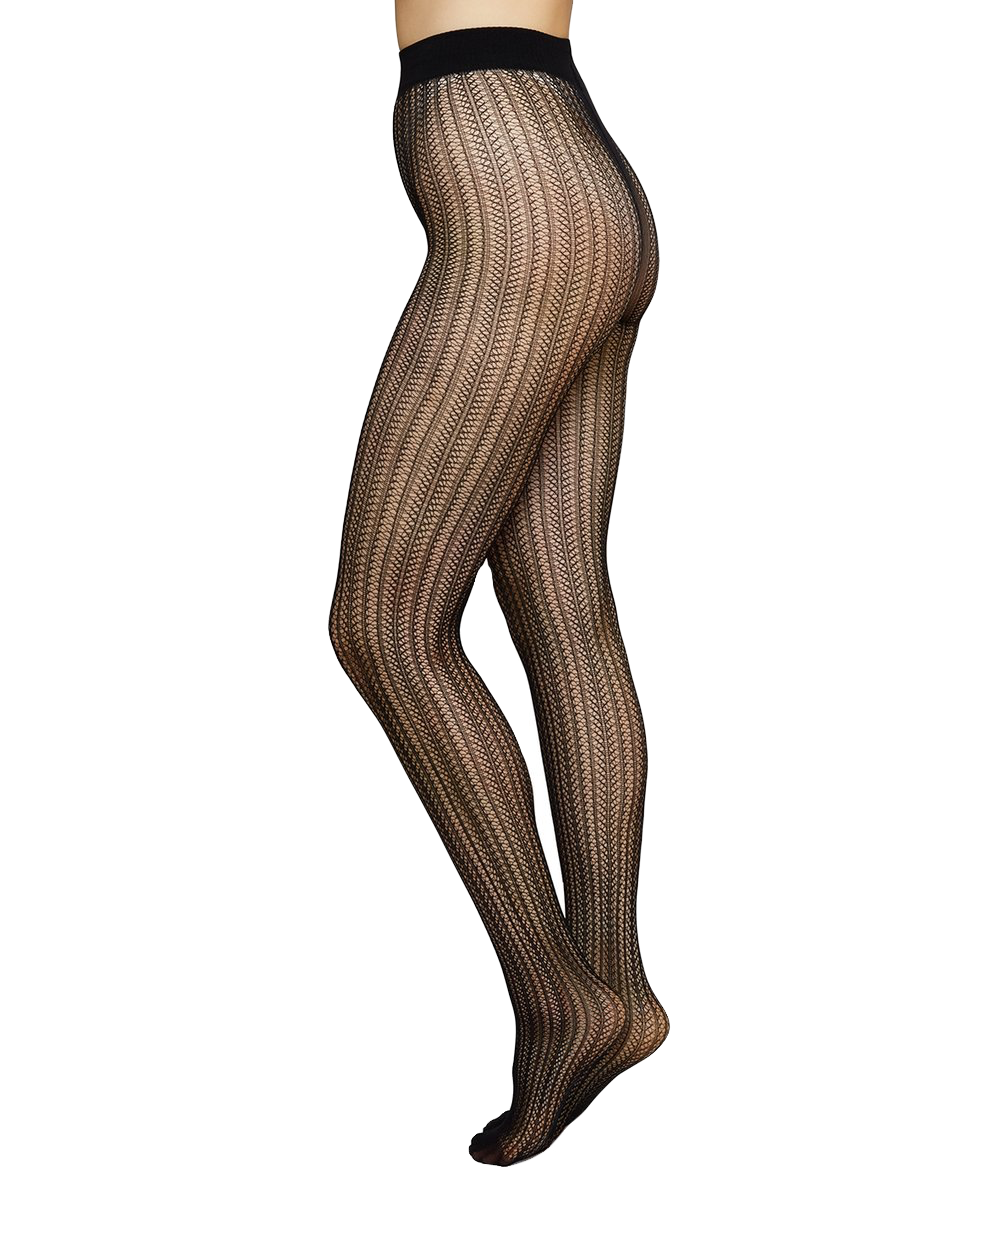 Selma Net Tights